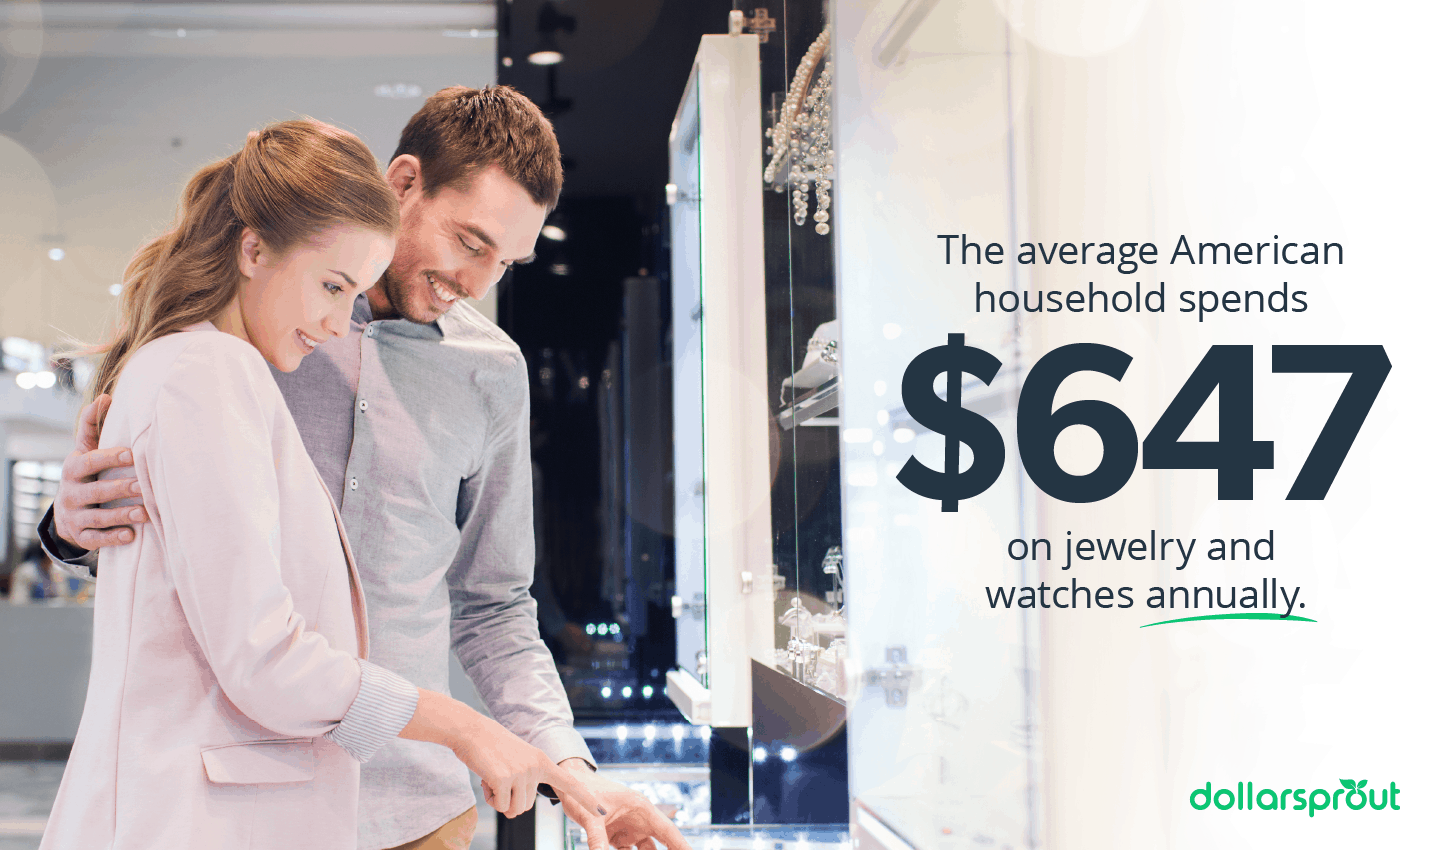 Average annual spending on jewelry and watches per household